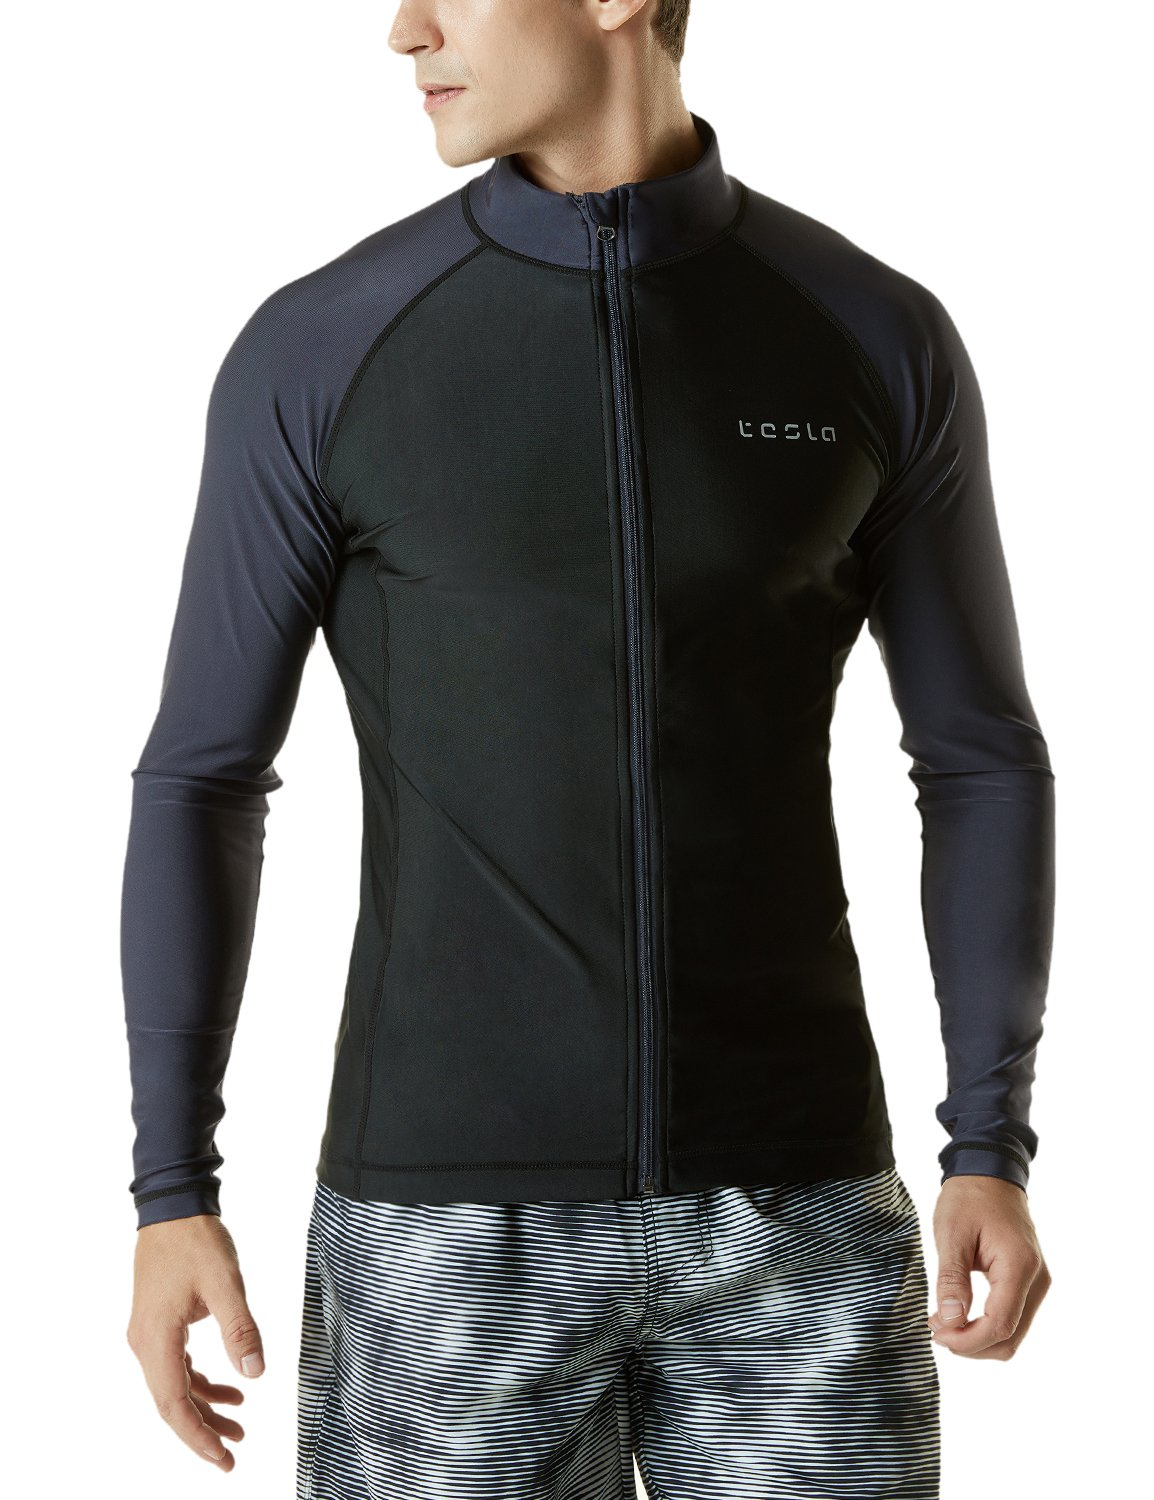 Tesla TM-MSZ03-KDG_Medium Men's UPF 50+ Zip Front Long Sleeve Top Rashguard Swimsuit MSZ03